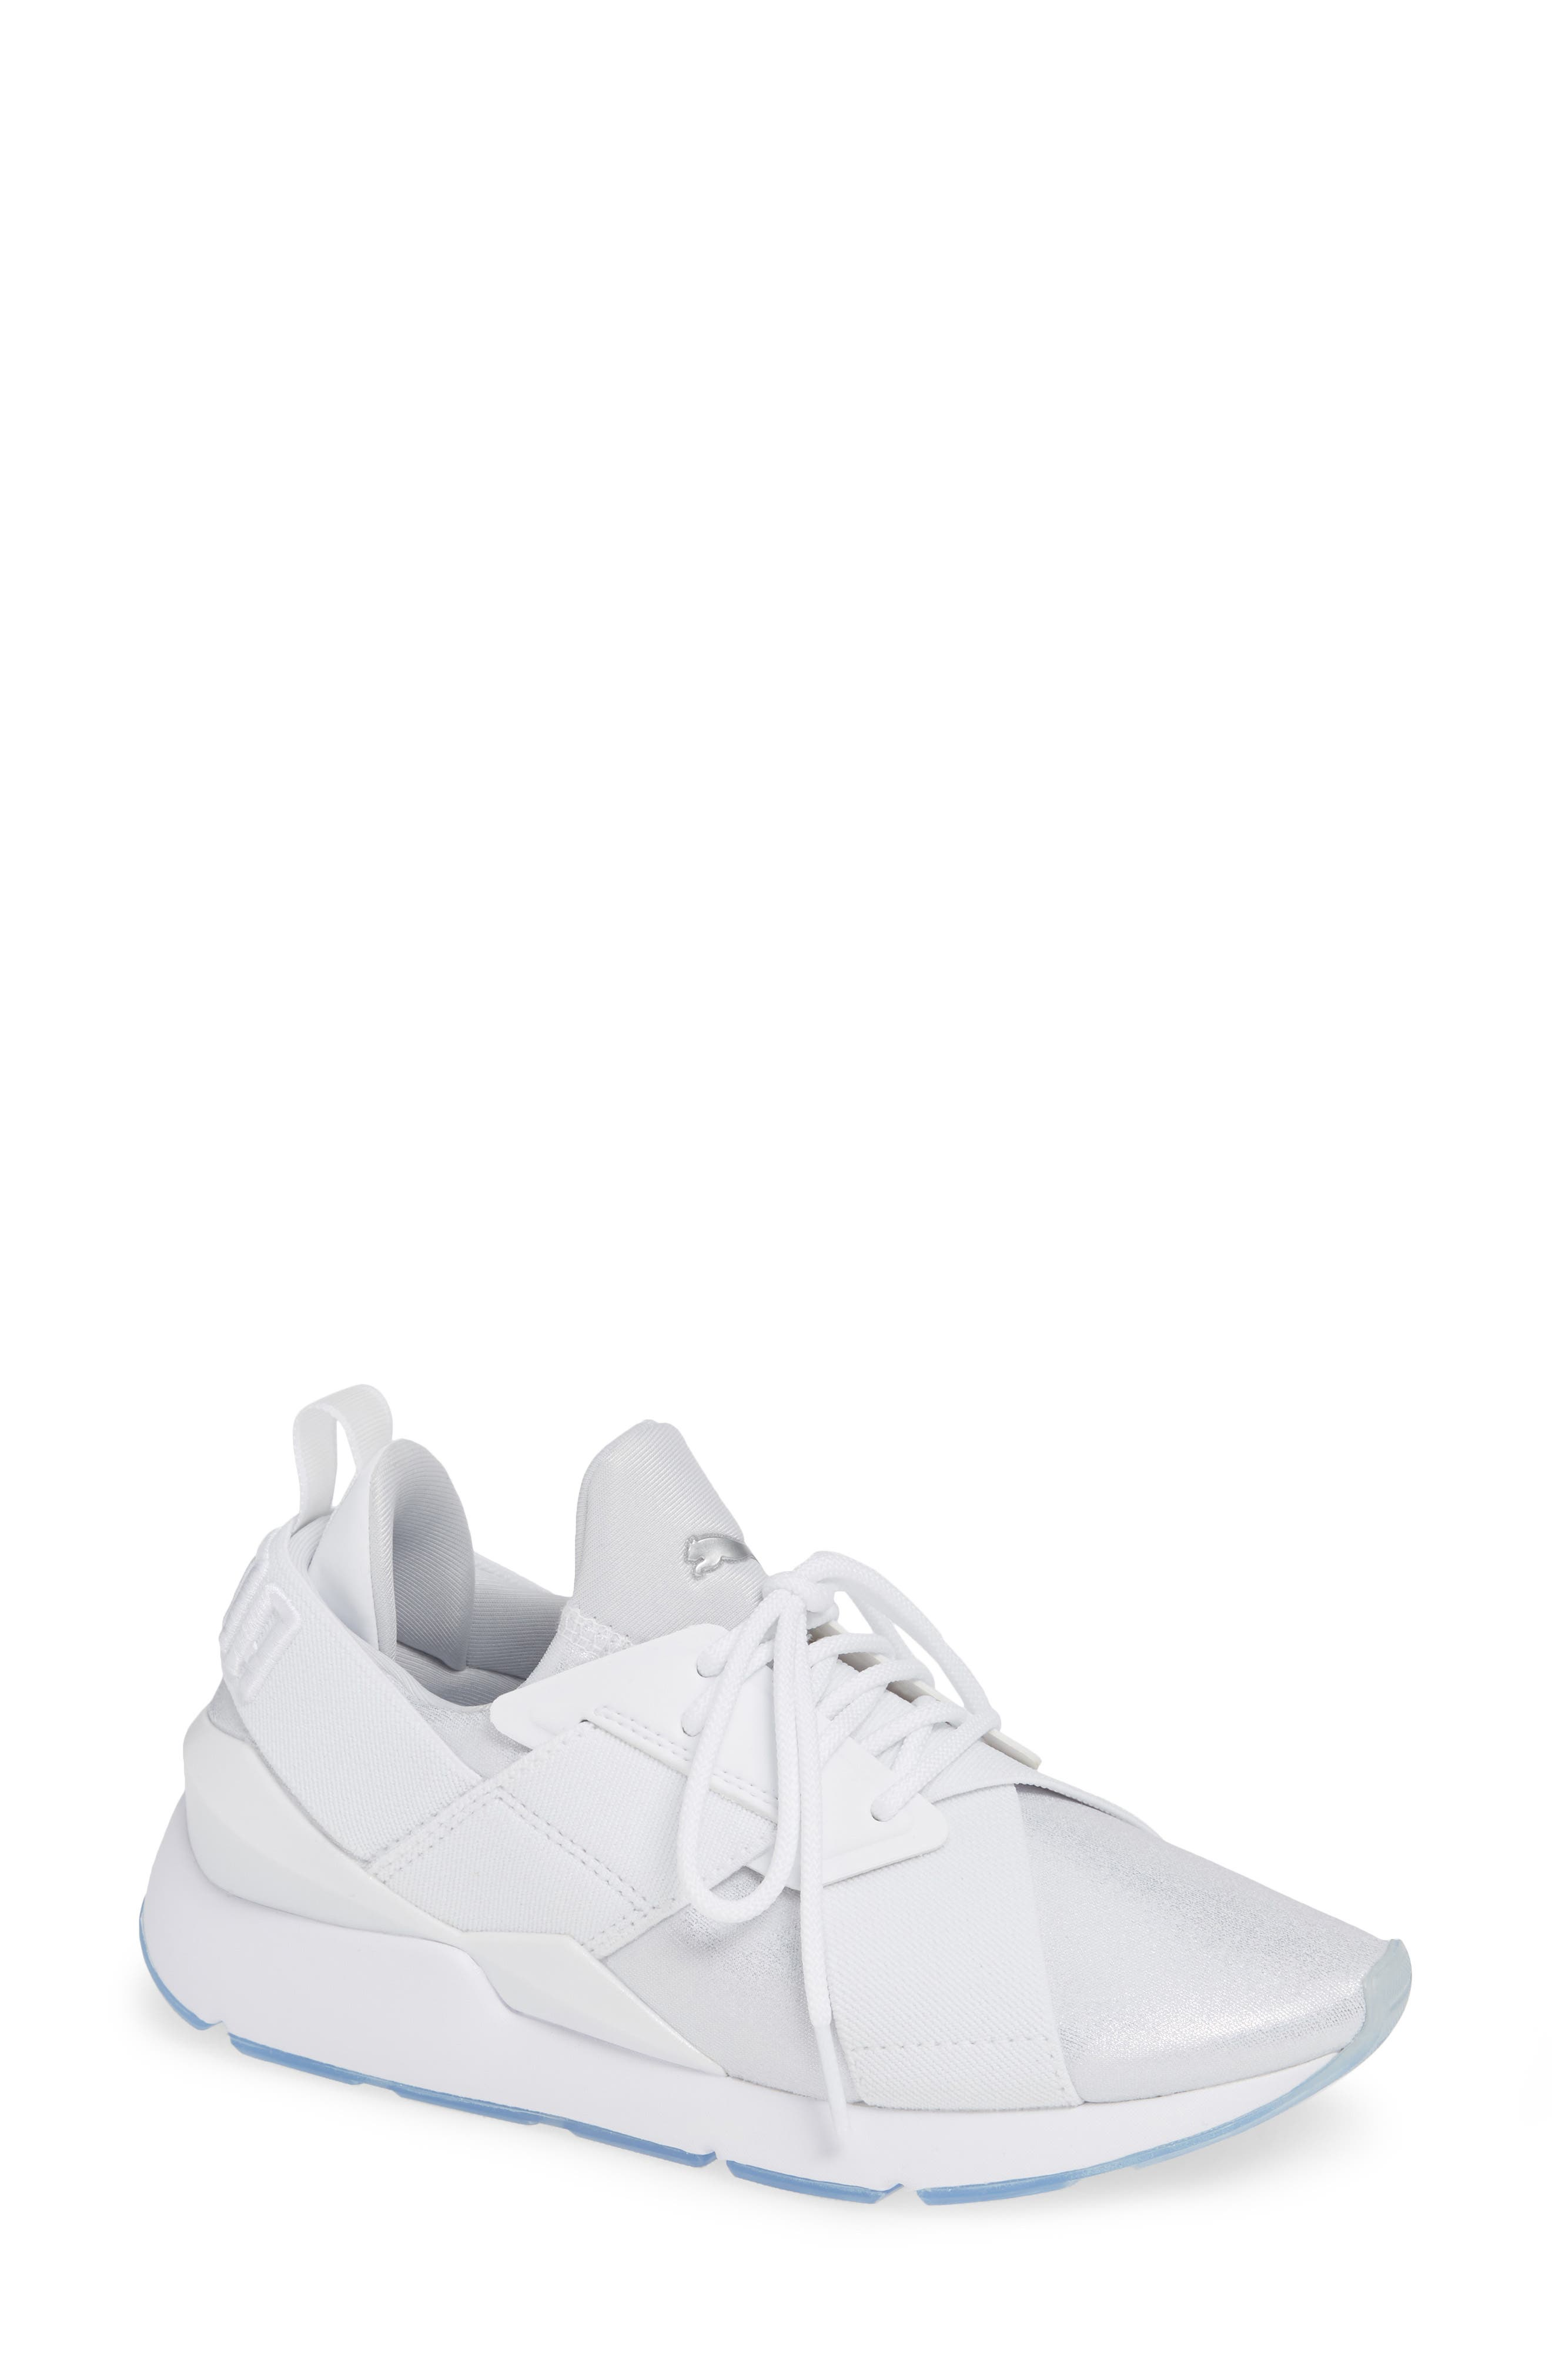 Women'S Muse Ice Low-Top Sneakers in Puma White/ Puma White